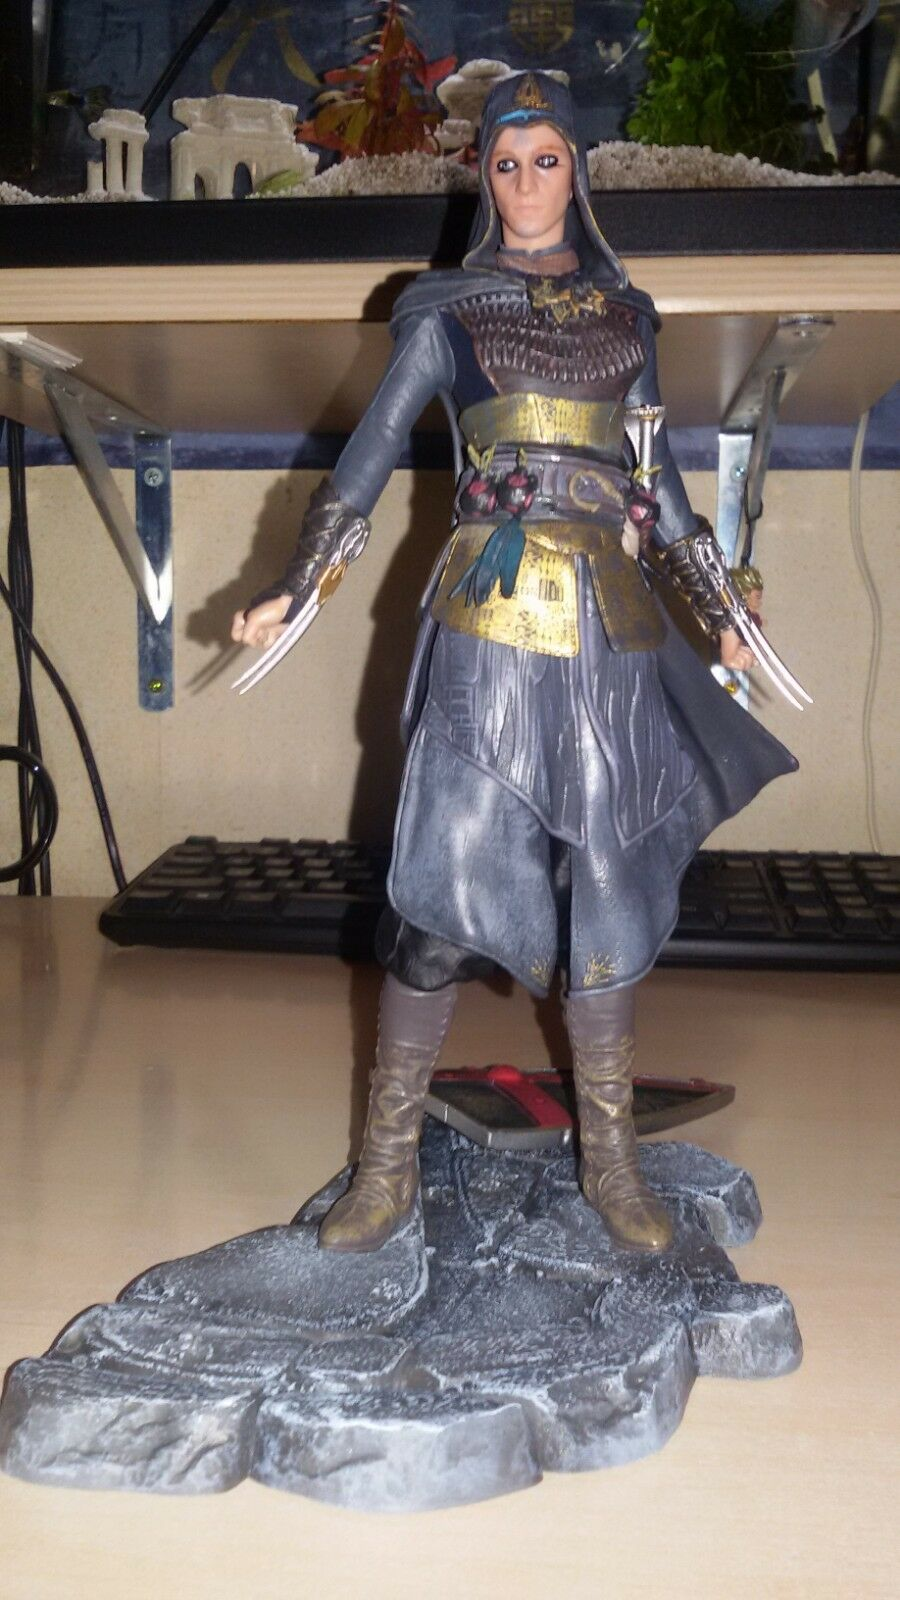 ASSASSINS ASSASSIN'S ASSASSIN'S ASSASSIN'S CREED MOVIE - MARIA FIGURINE 23 cm dd37de